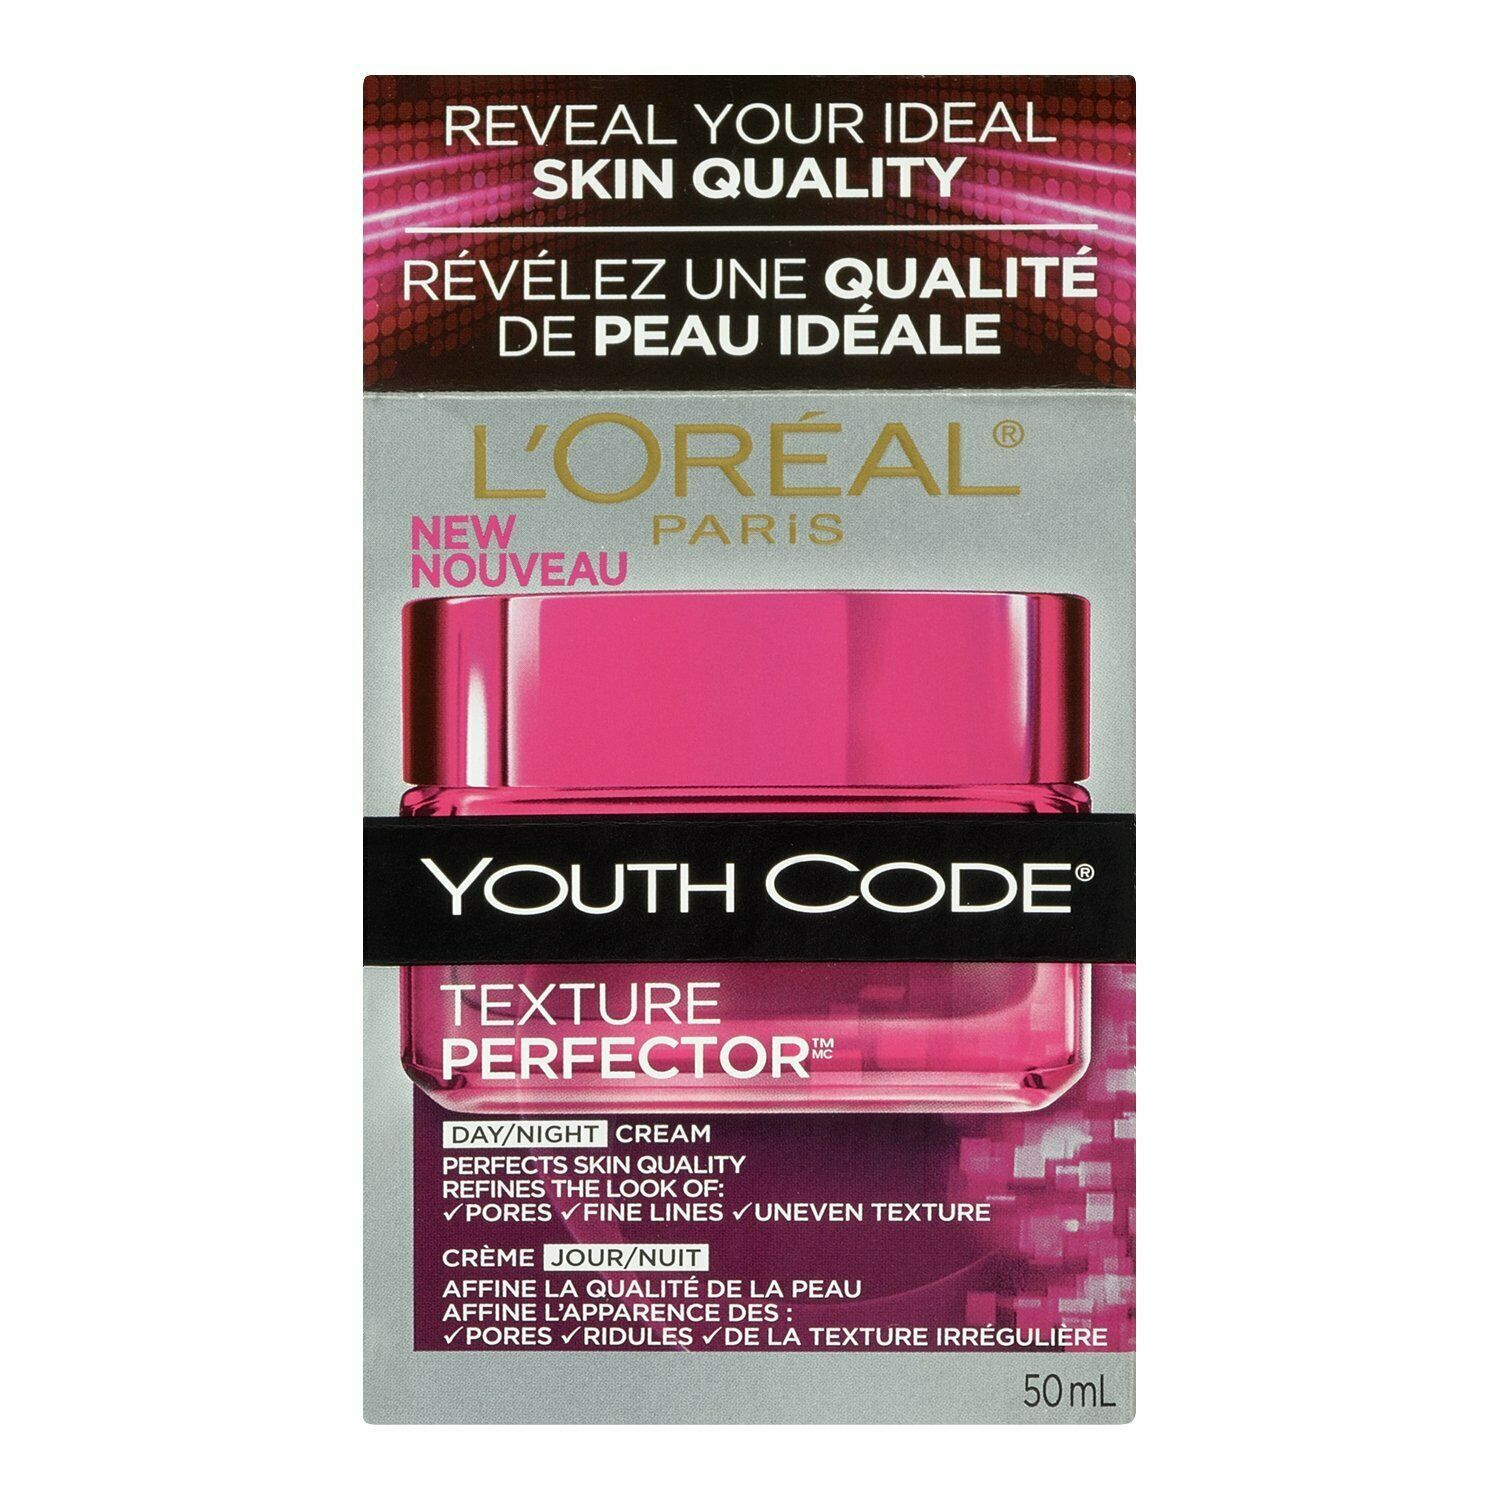 Primary image for L'Oreal Paris Youth Code Texture Perfector Day/Night Cream, 1.7 Fluid Ounce